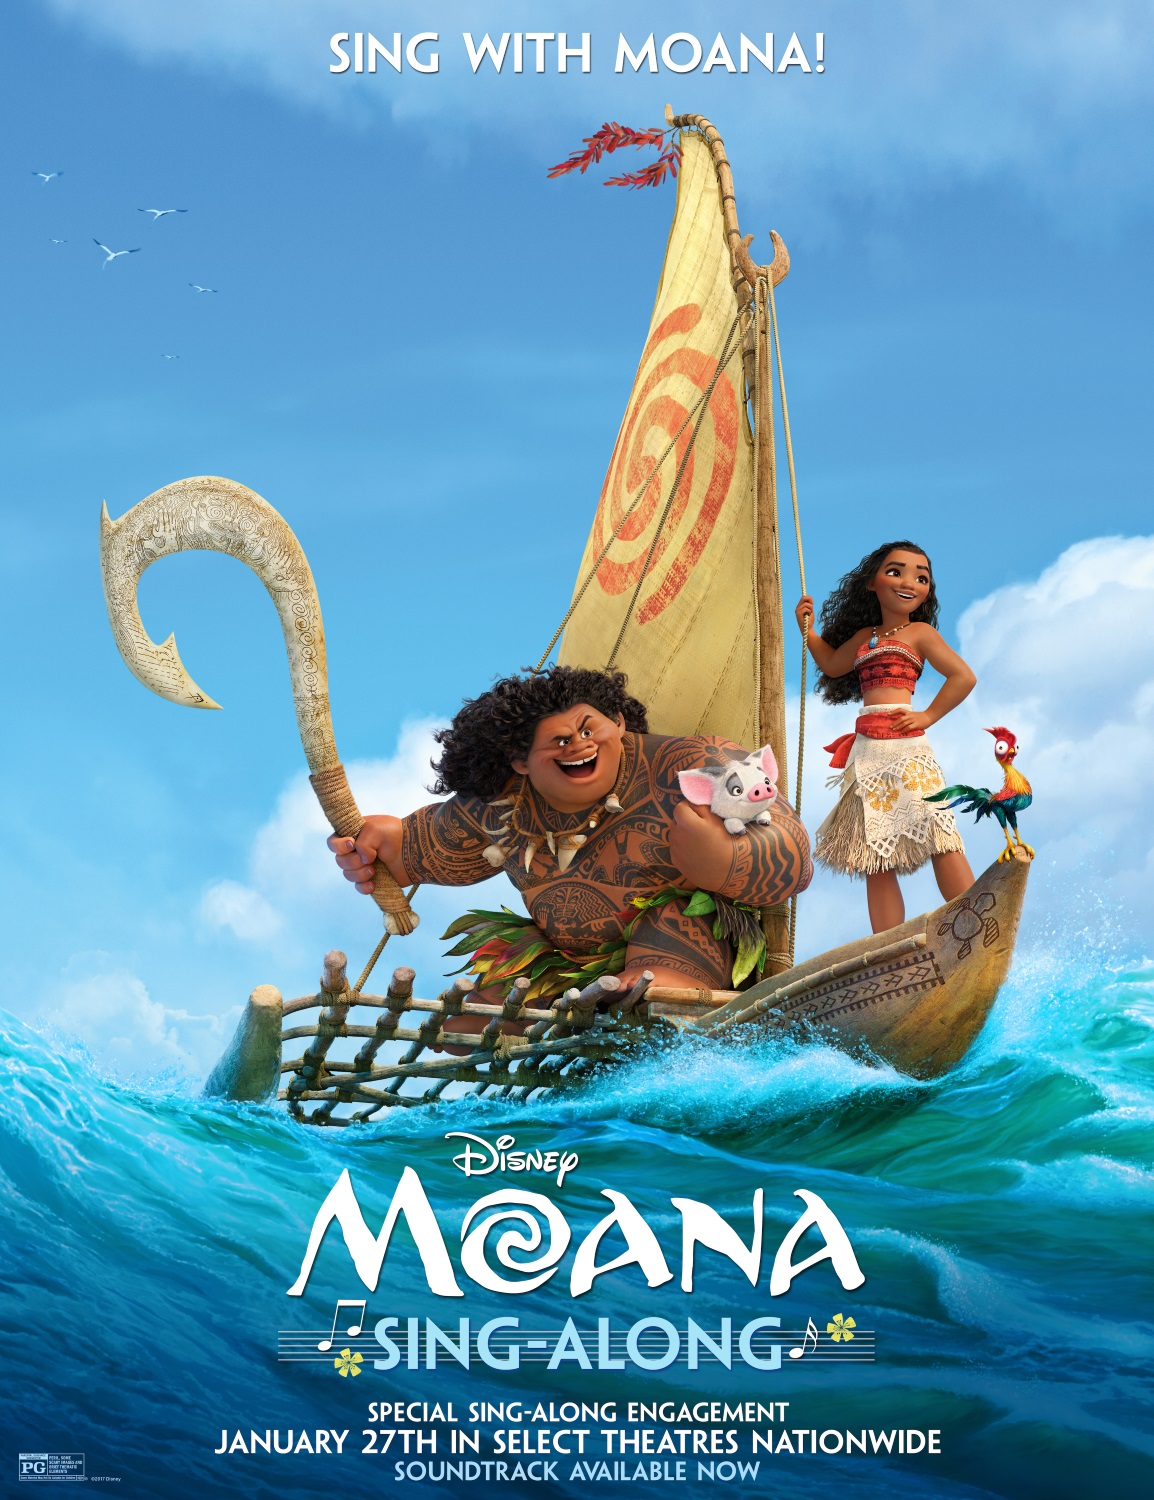 Moana sing-along version to hit theaters in late January